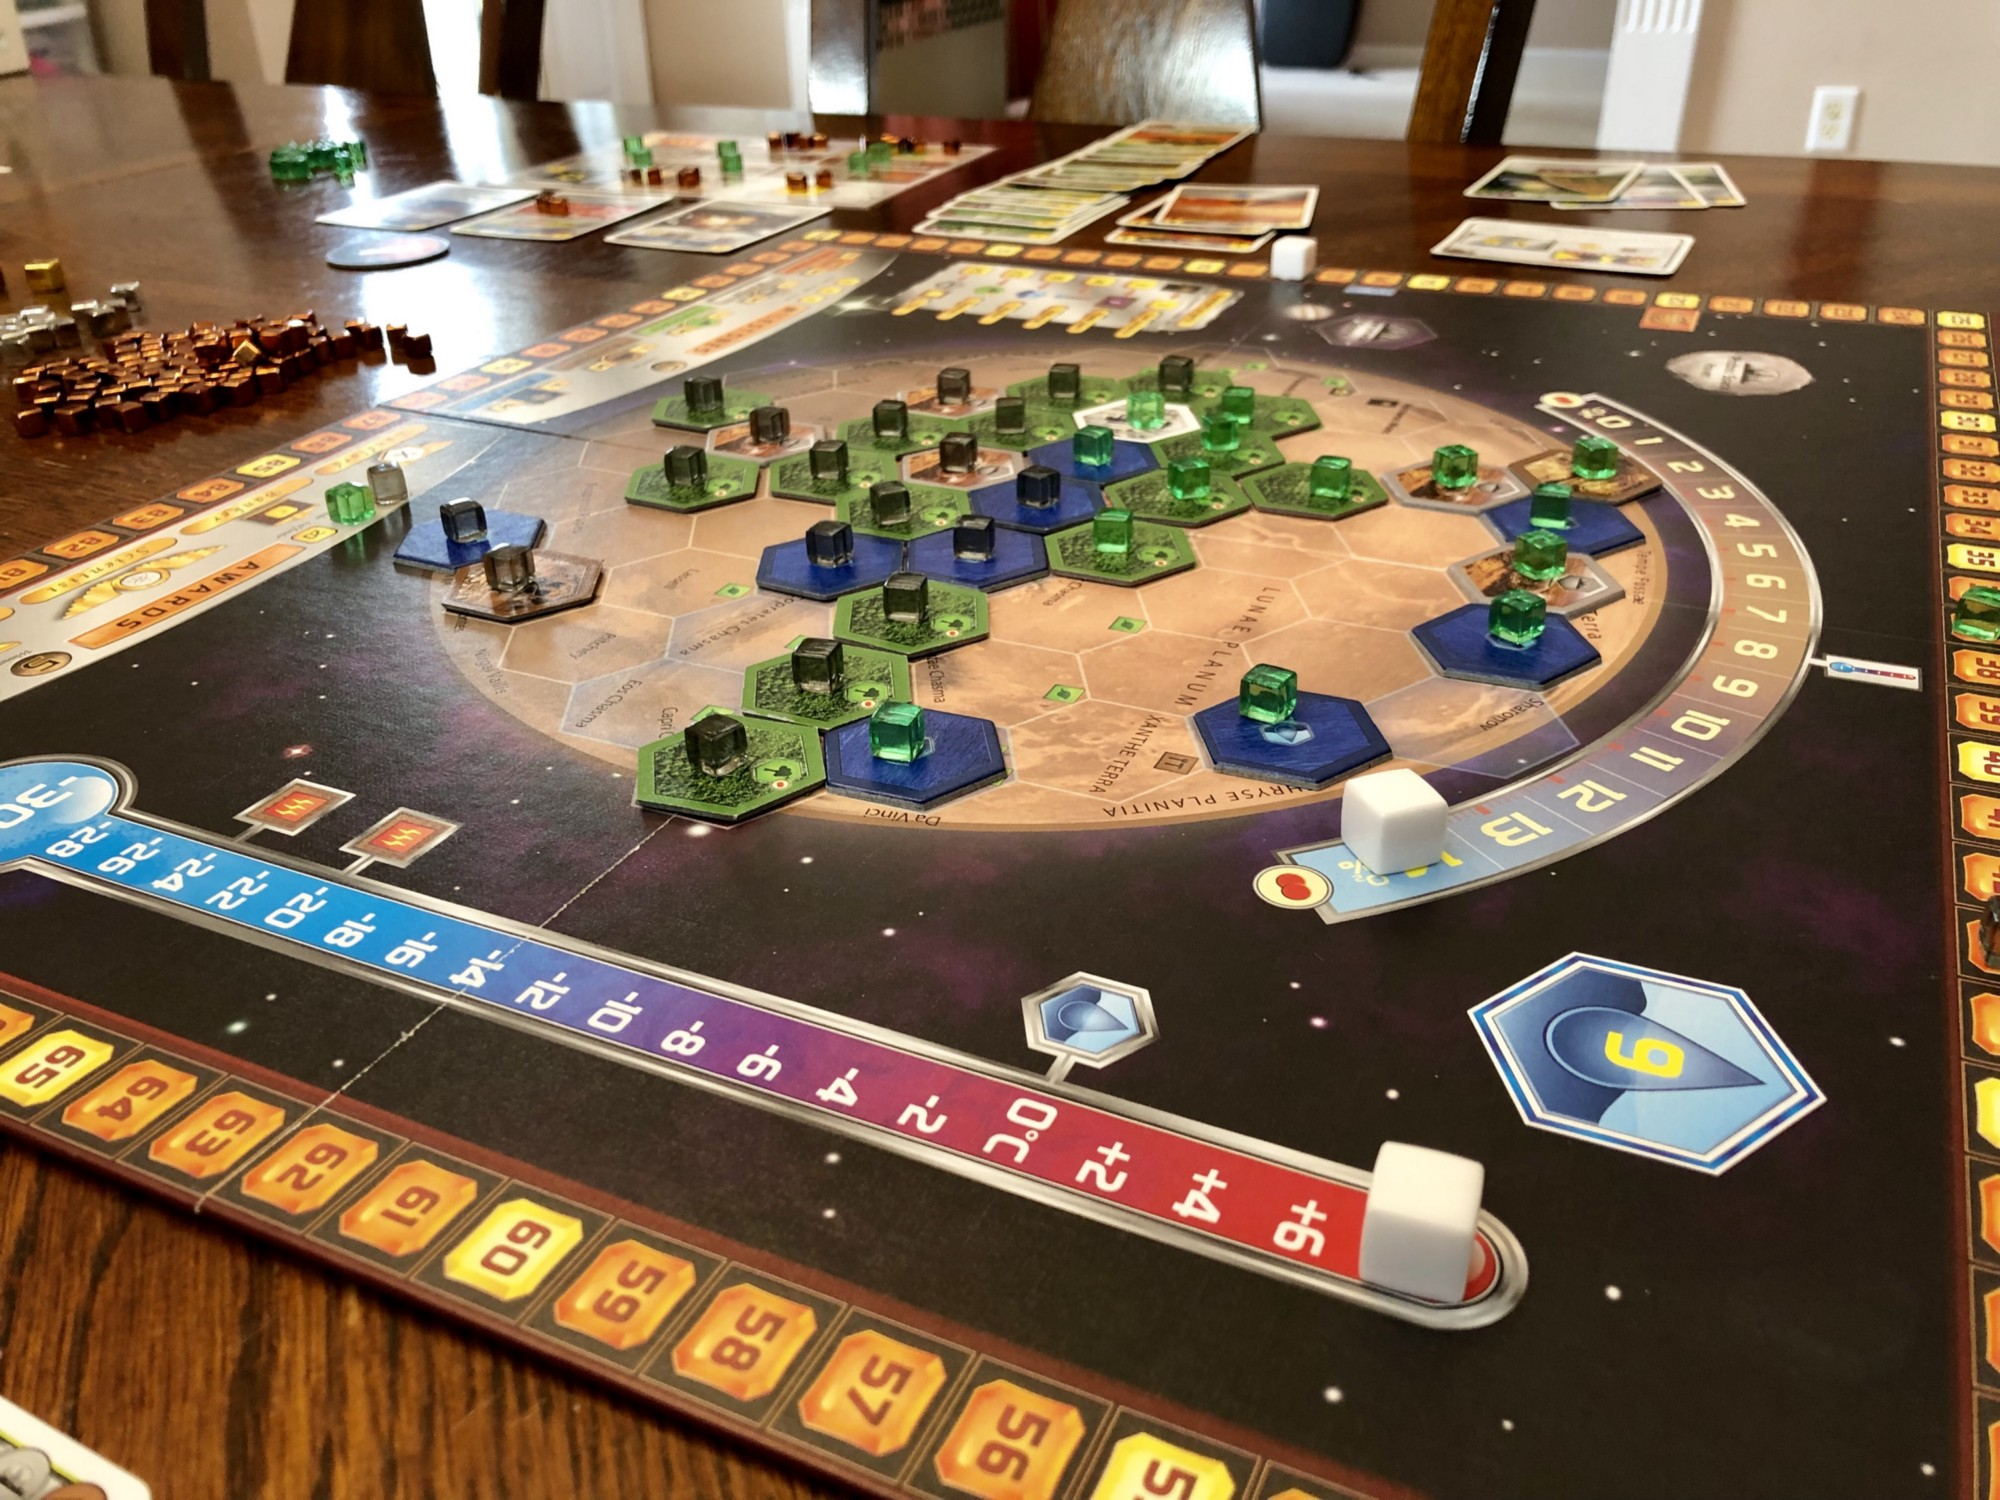 Terraforming Mars Hacked Tabletop Medium Speed Circuit Image Boardgamegeek The Taming Of Red Planet Has Begin Corporations Are Competing To Transform Into A Habitable By Spending Vast Resources